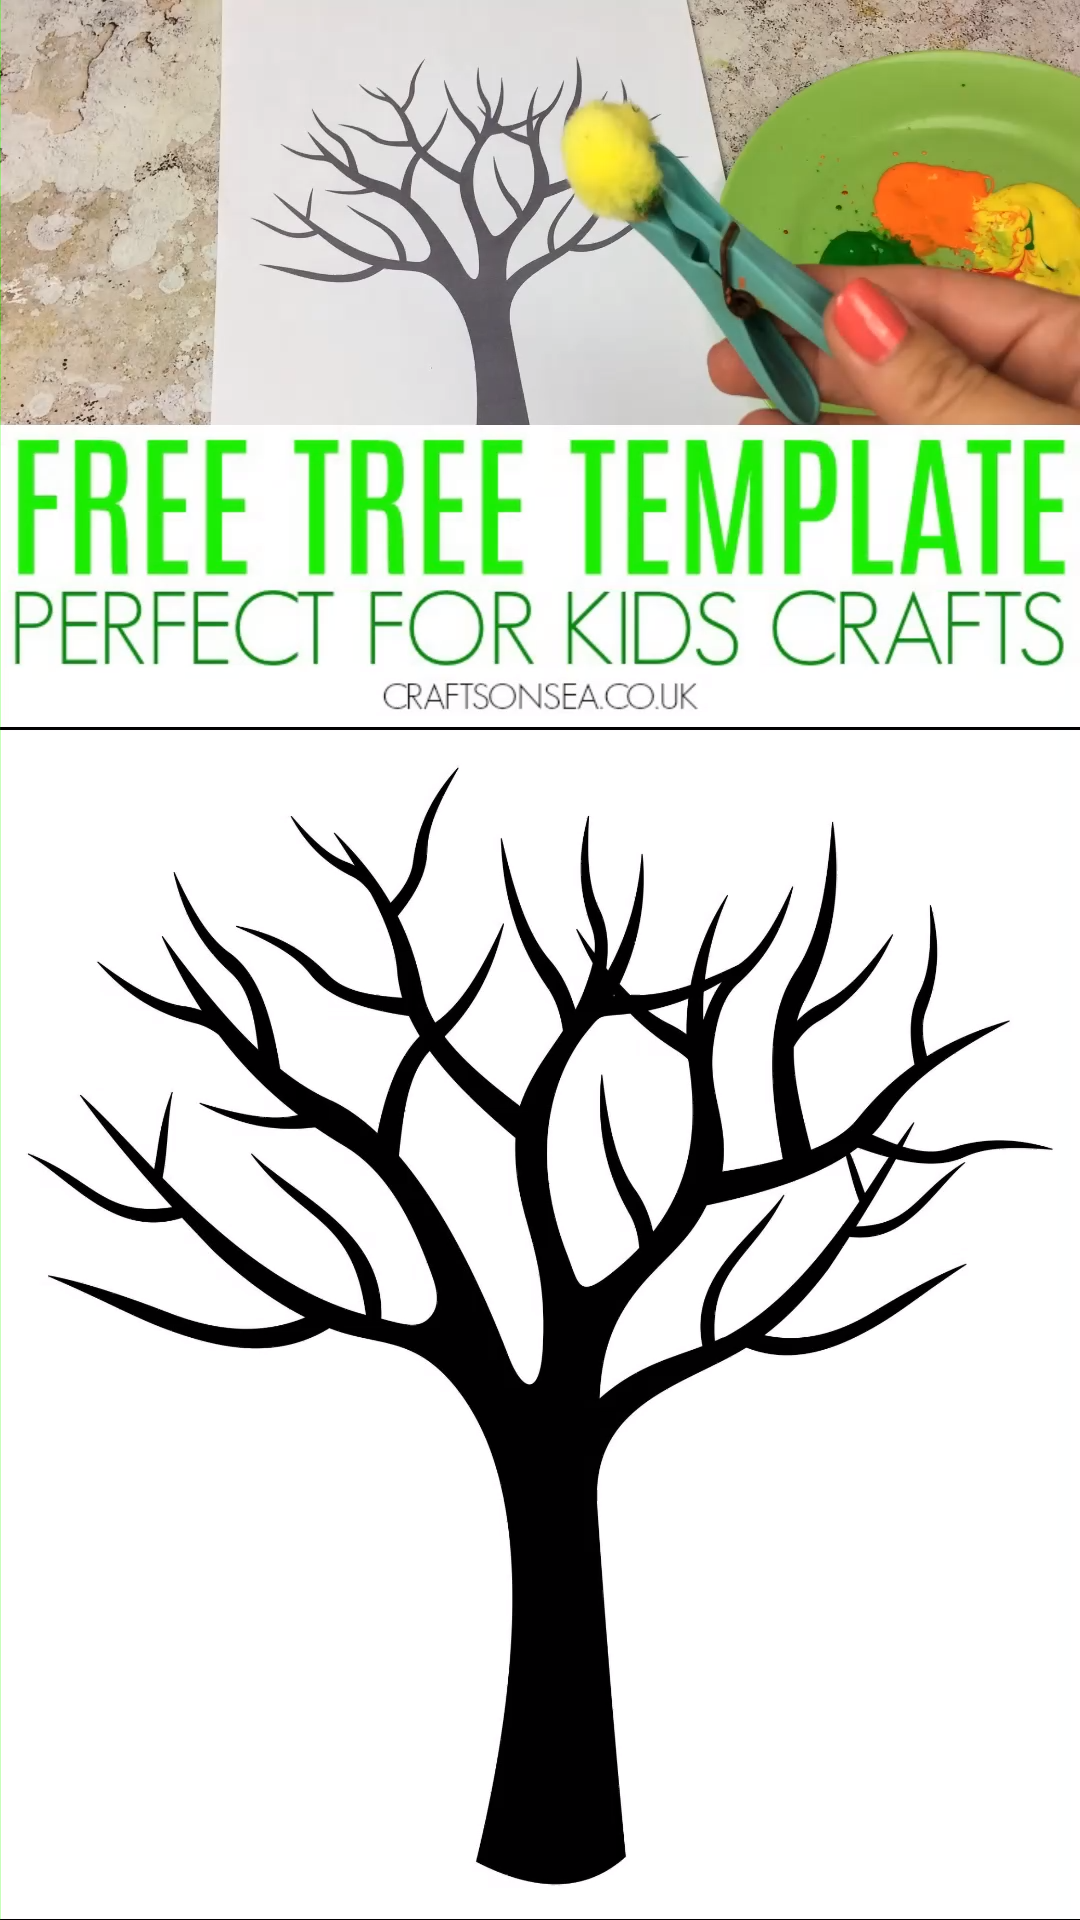 Free tree template perfect for kids arts and crafts! See our ideas for autumn tree crafts, winter tree crafts, spring tree crafts and nature tree crafts all using our template #kidscrafts #kidsactivities #preschool #kidsart